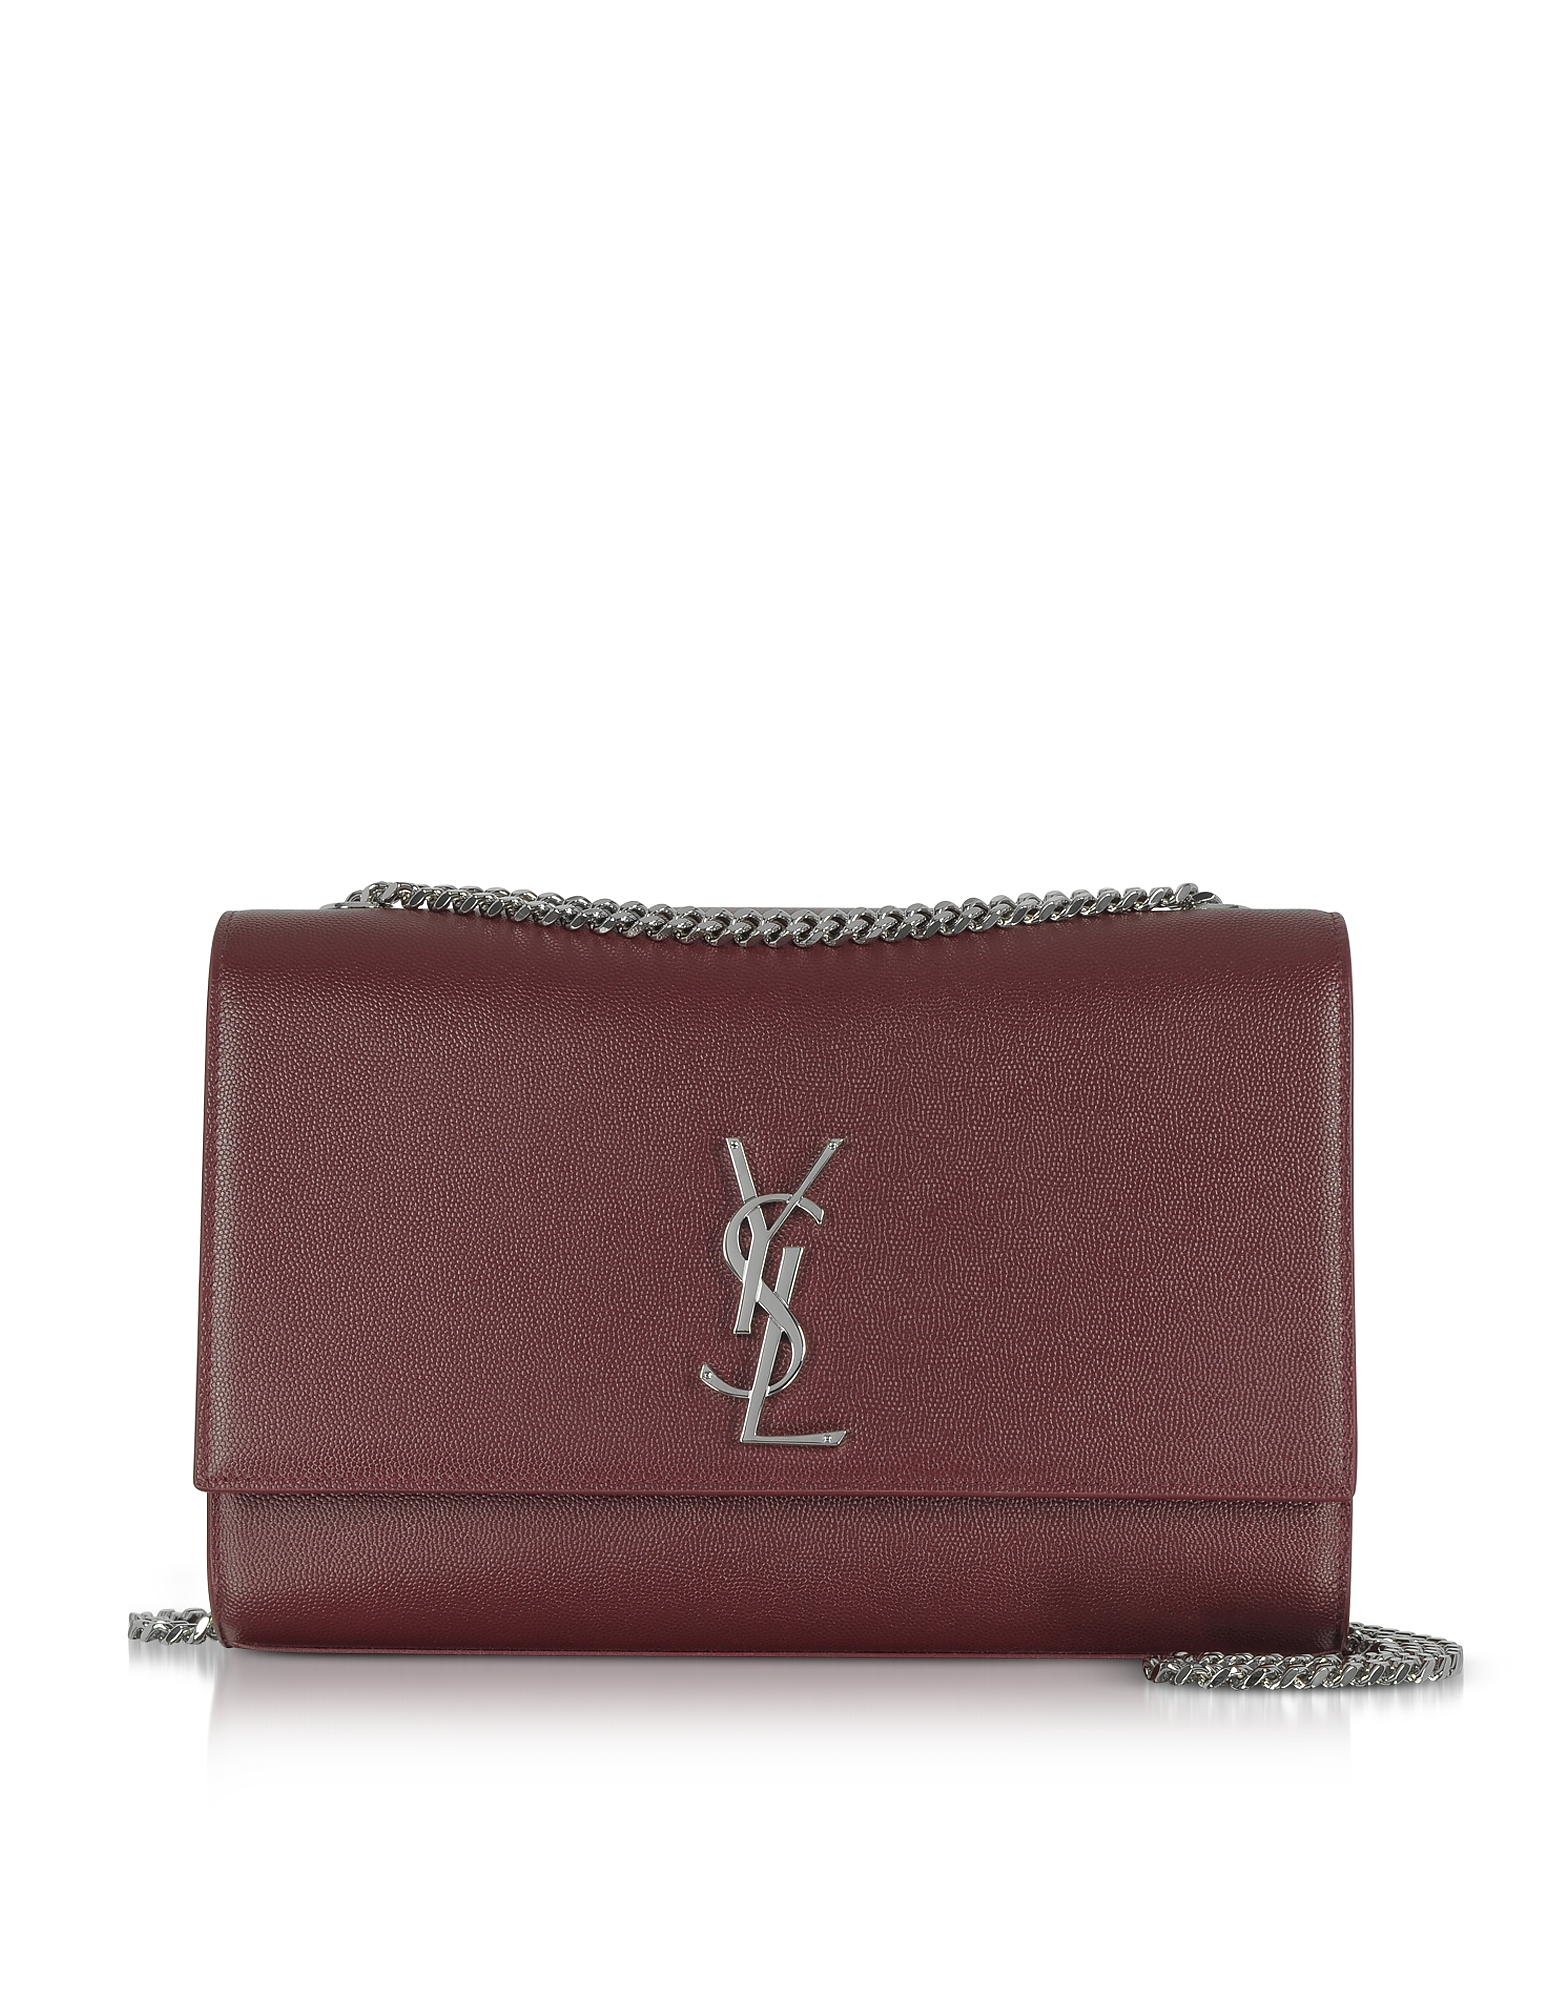 Saint Laurent Handbags, Kate Large Palissandre Leather Shoulder Bag